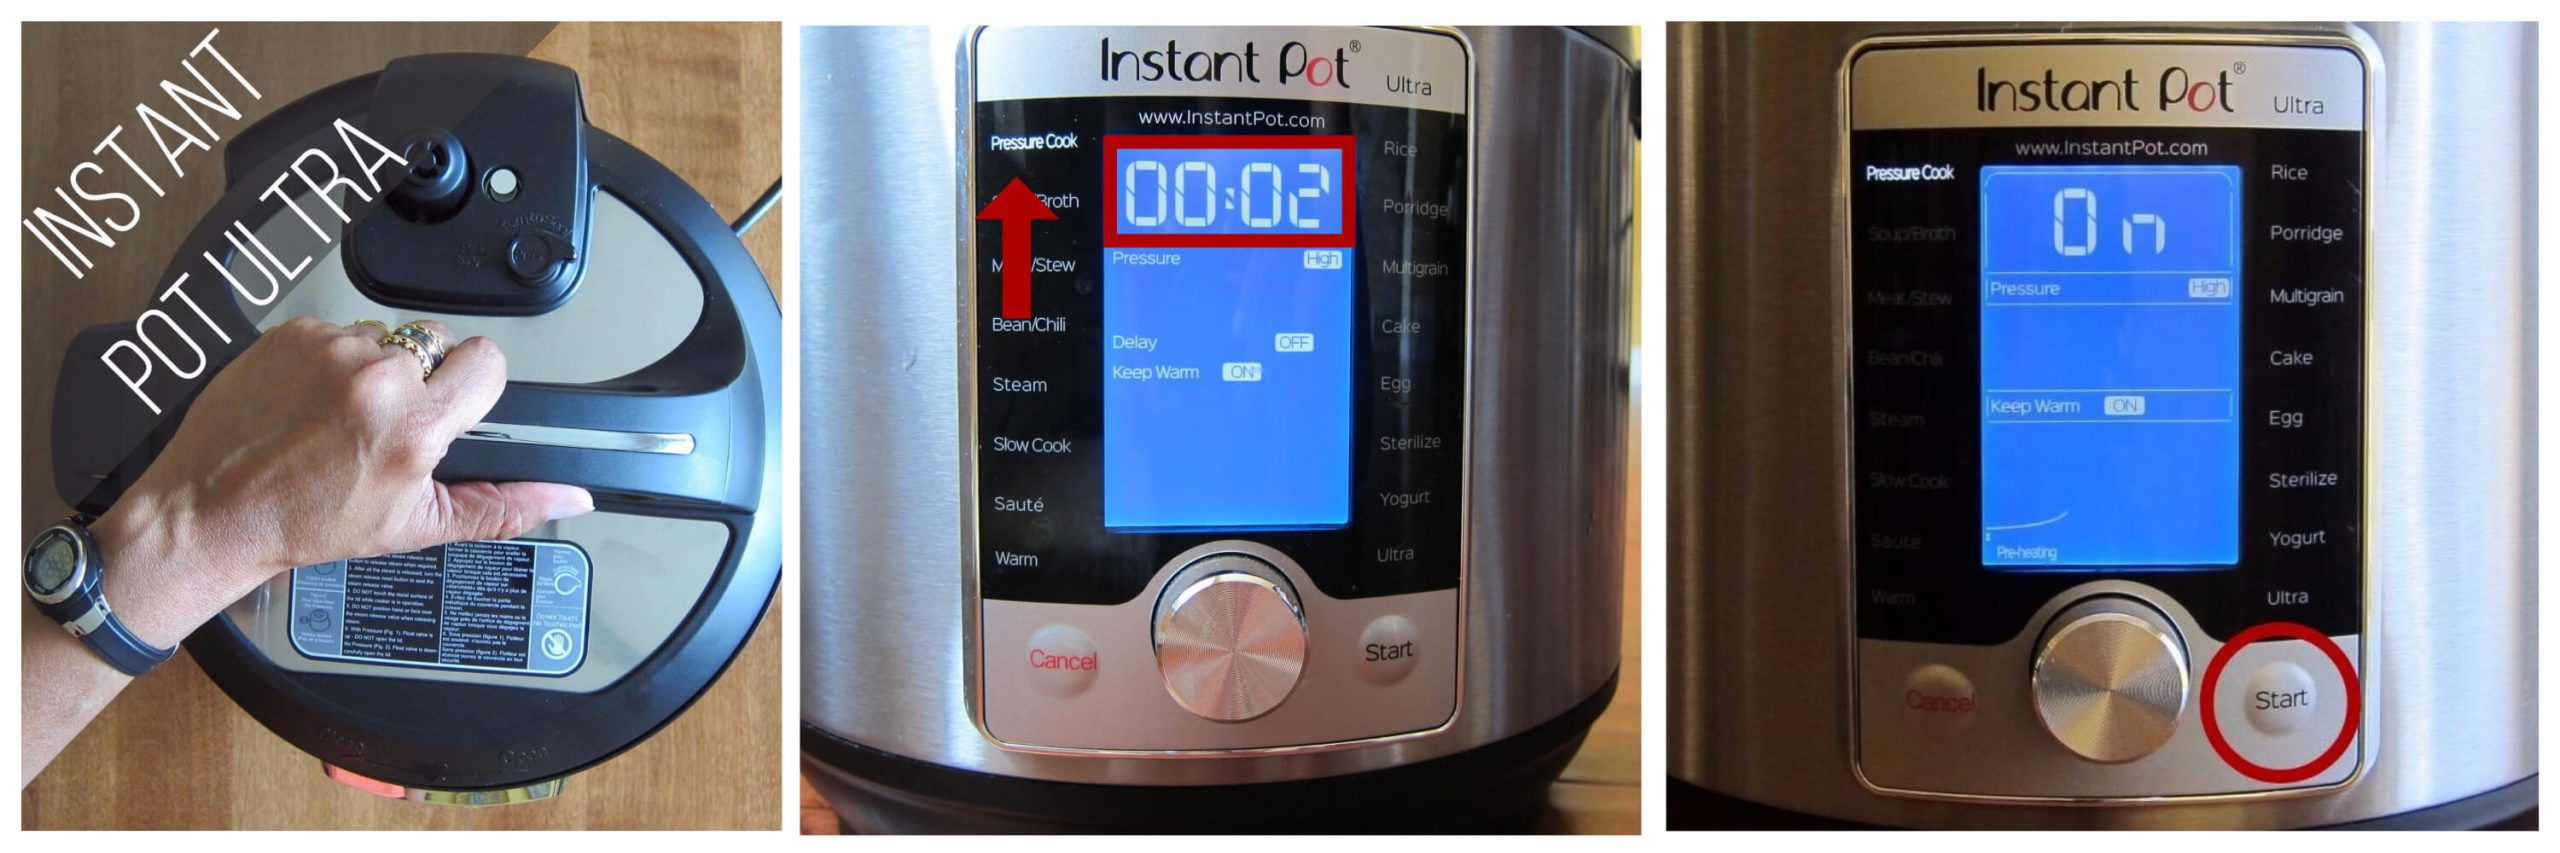 Instant Pot Ultra pressure cook 2 minutes collage - open lid, select pressure cook and set time to 00:02, display says on - Paint the Kitchen Red